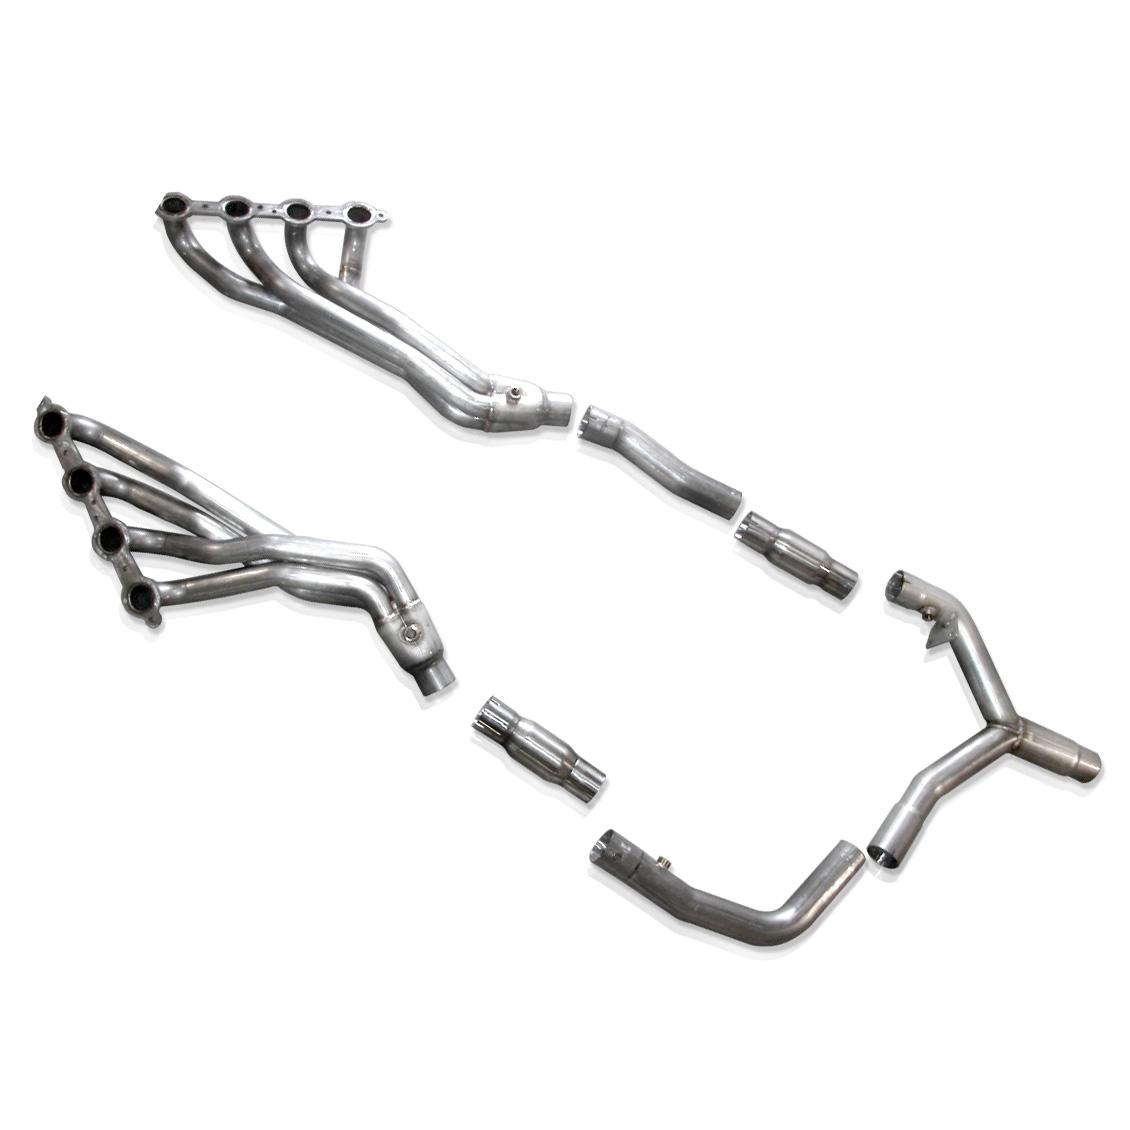 "2000 LS1 Fbody Stainless Works Long Tube Headers with High Flow 2.5"" Catted Ypipe"